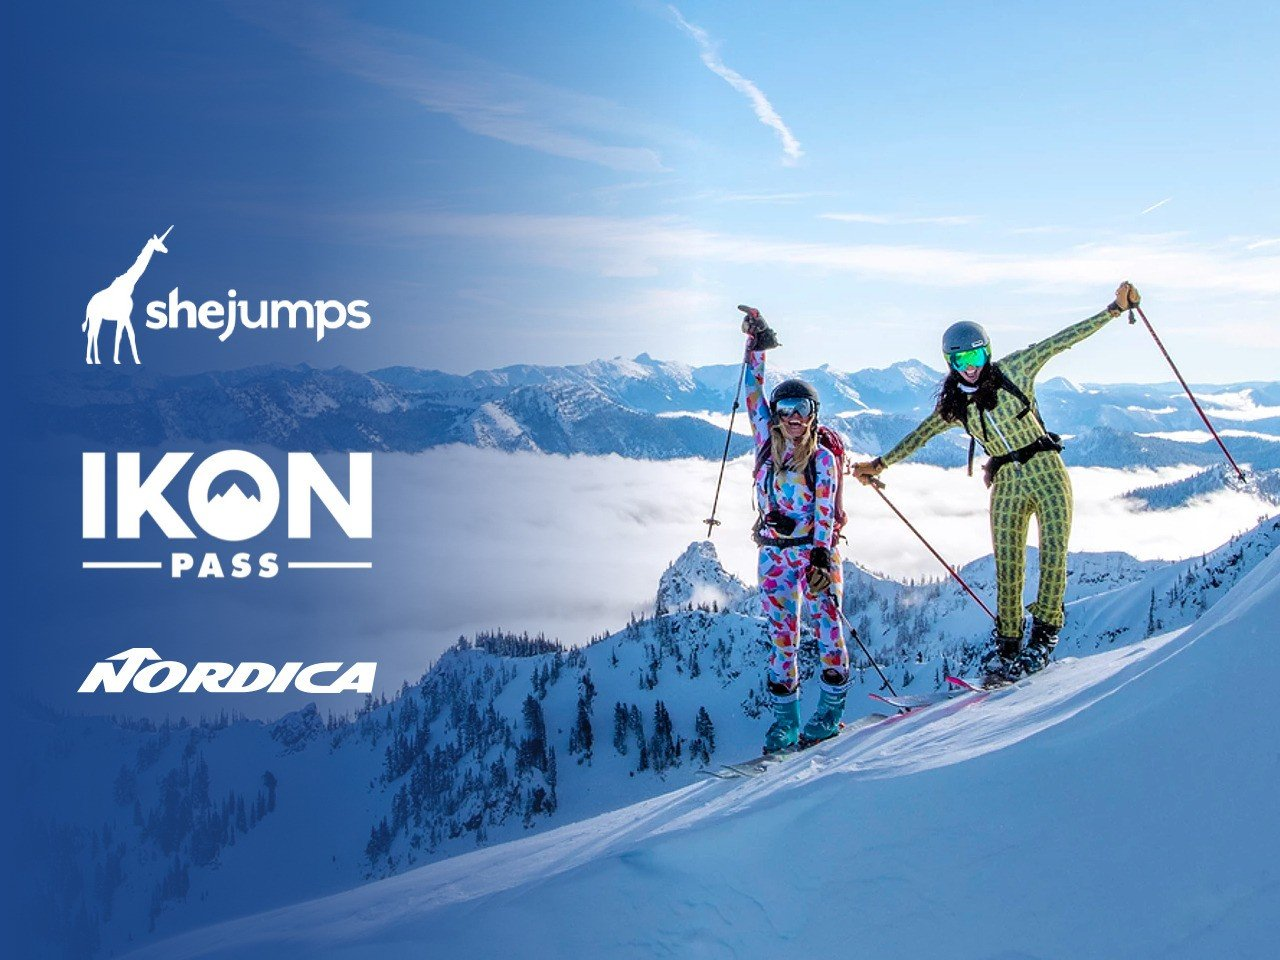 A PROUD PARTNER OF SHEJUMPS SNOWPACK SCHOLARSHIP